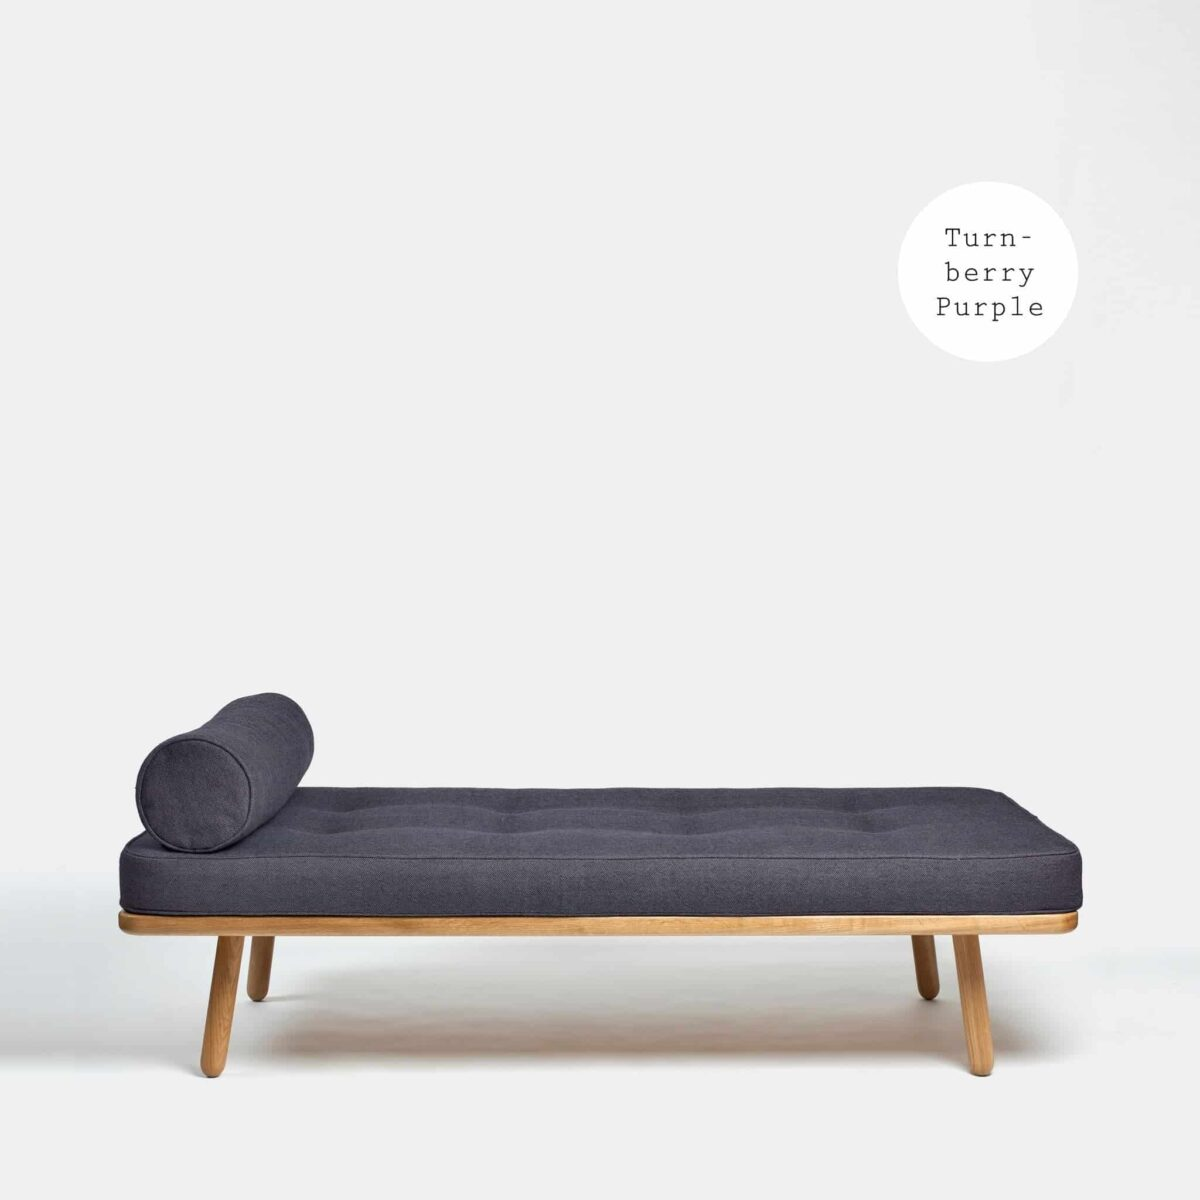 another-country-day-bed-one-oak-natural–mattress-1-bolster–turnberry-purple-001